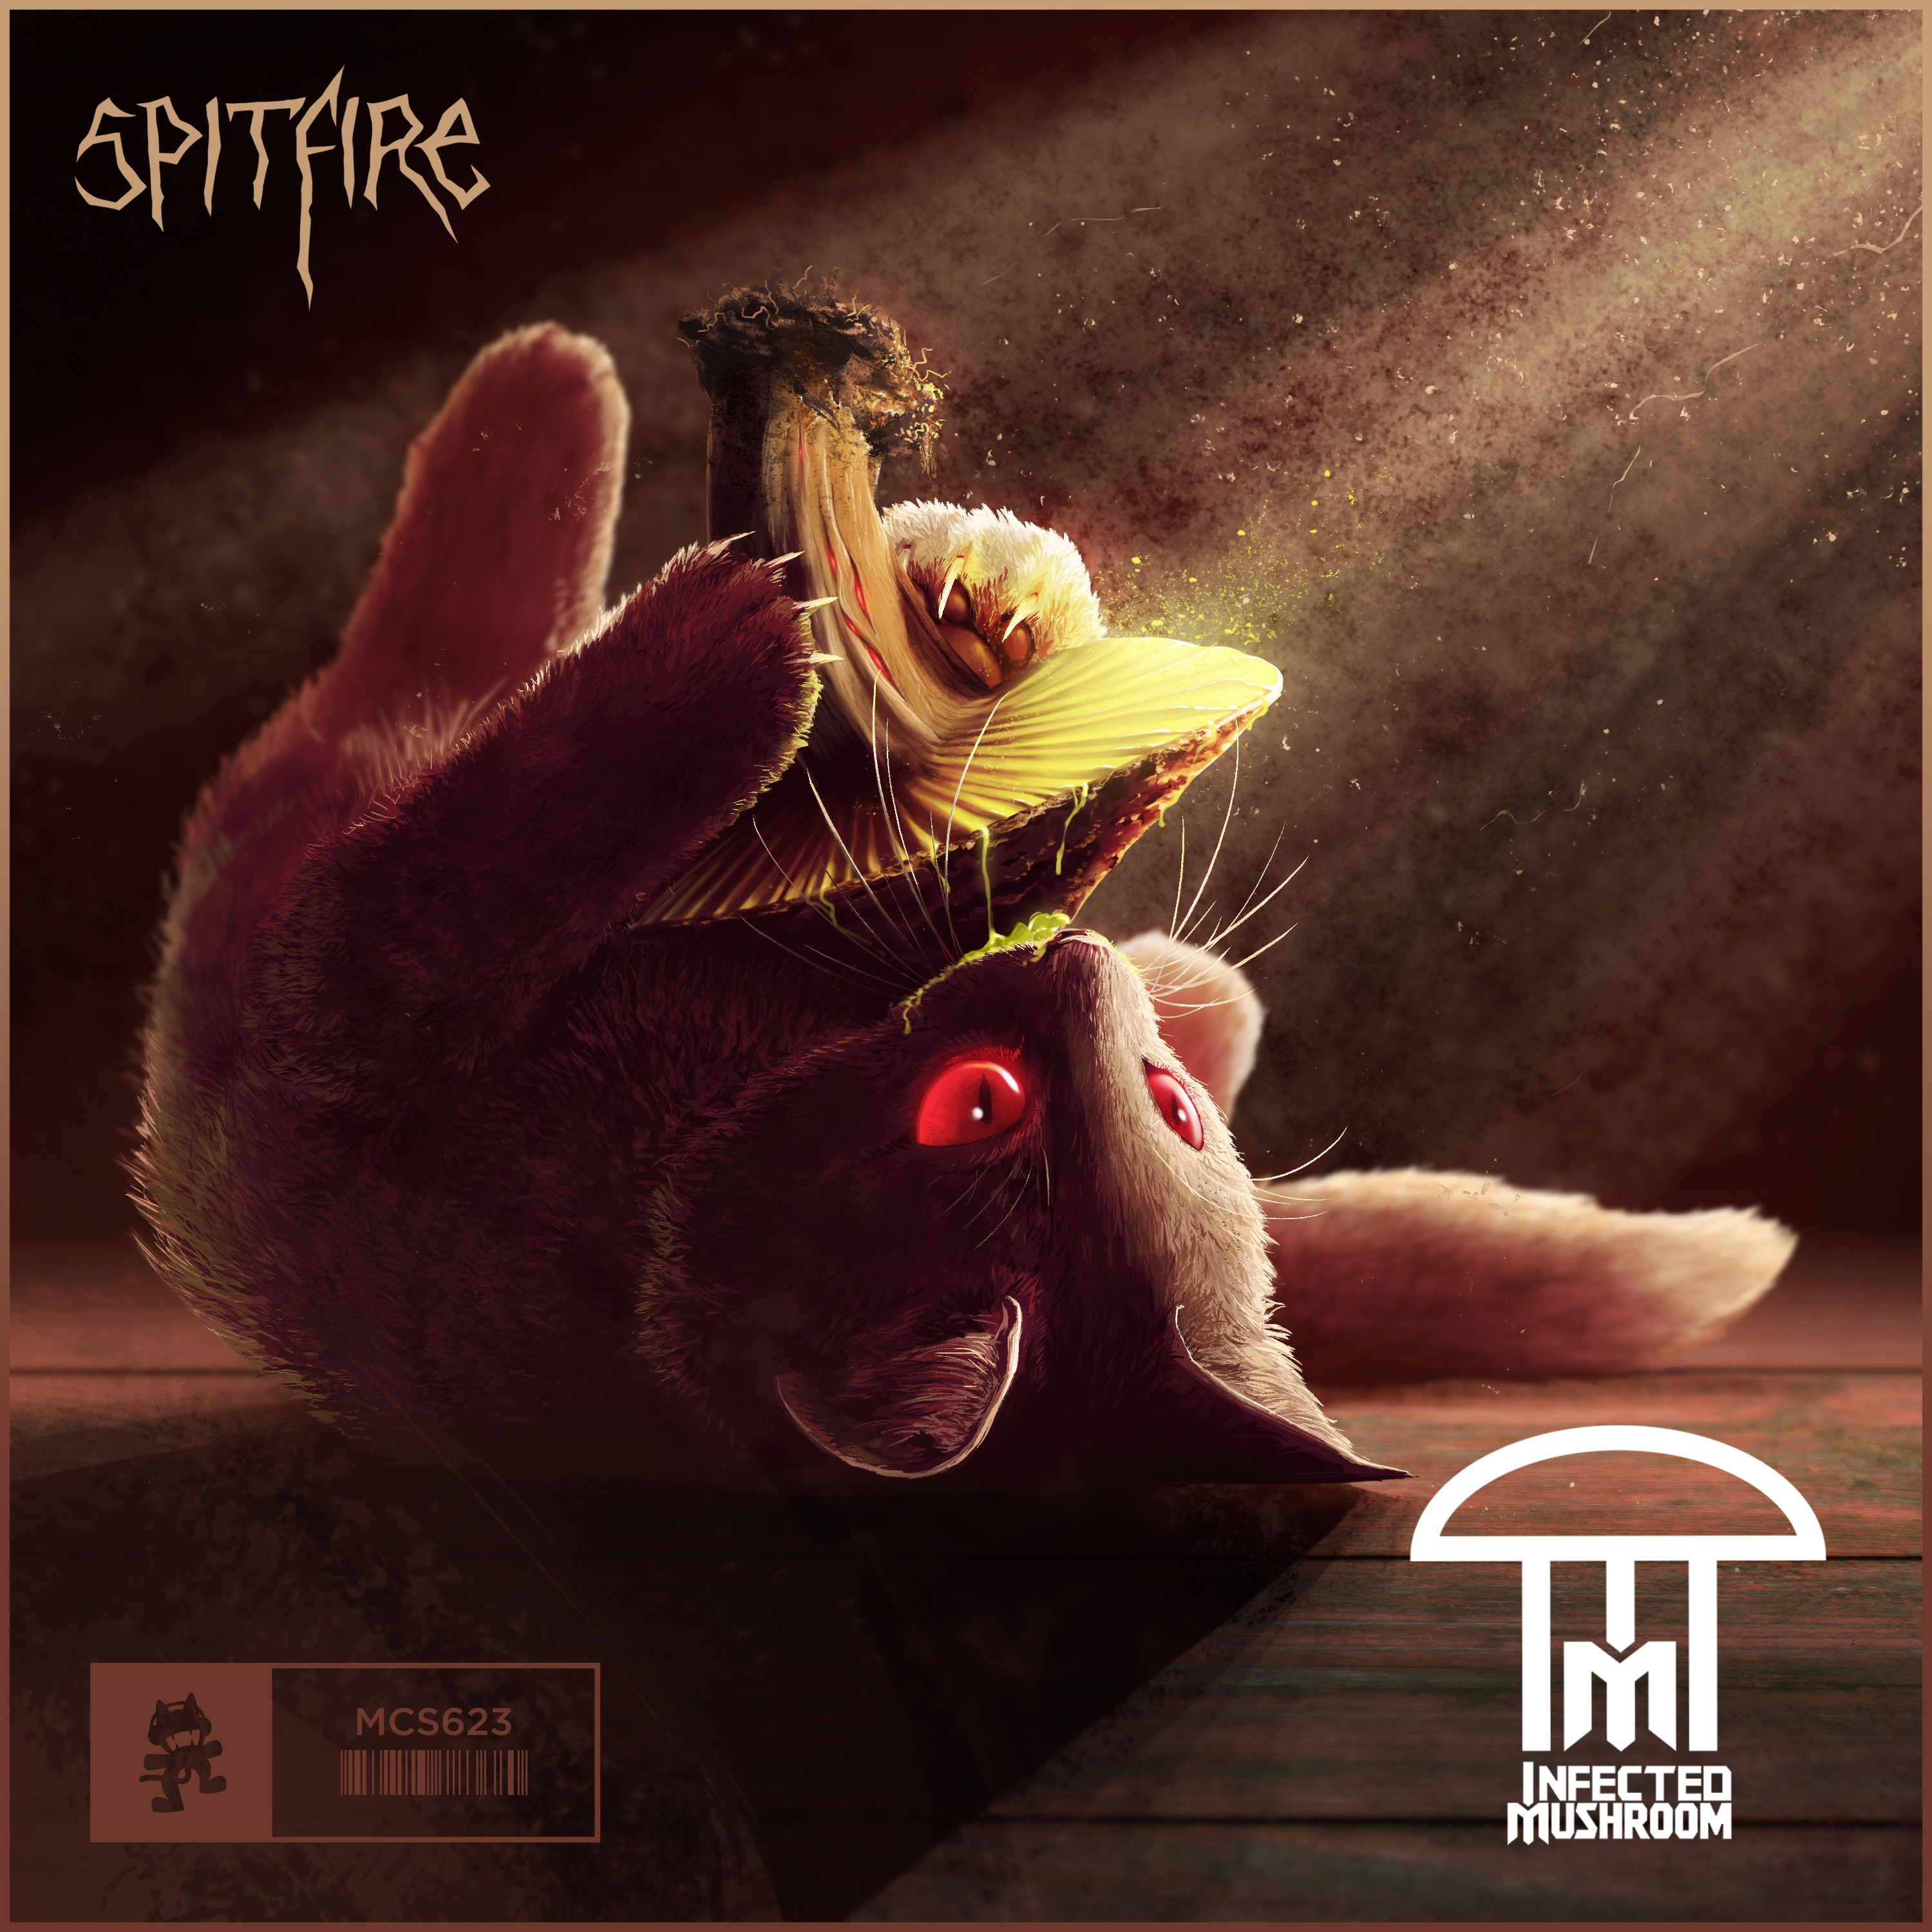 Infected Mushroom Songs Ideal infected mushroom - spitfire megathread : monstercat